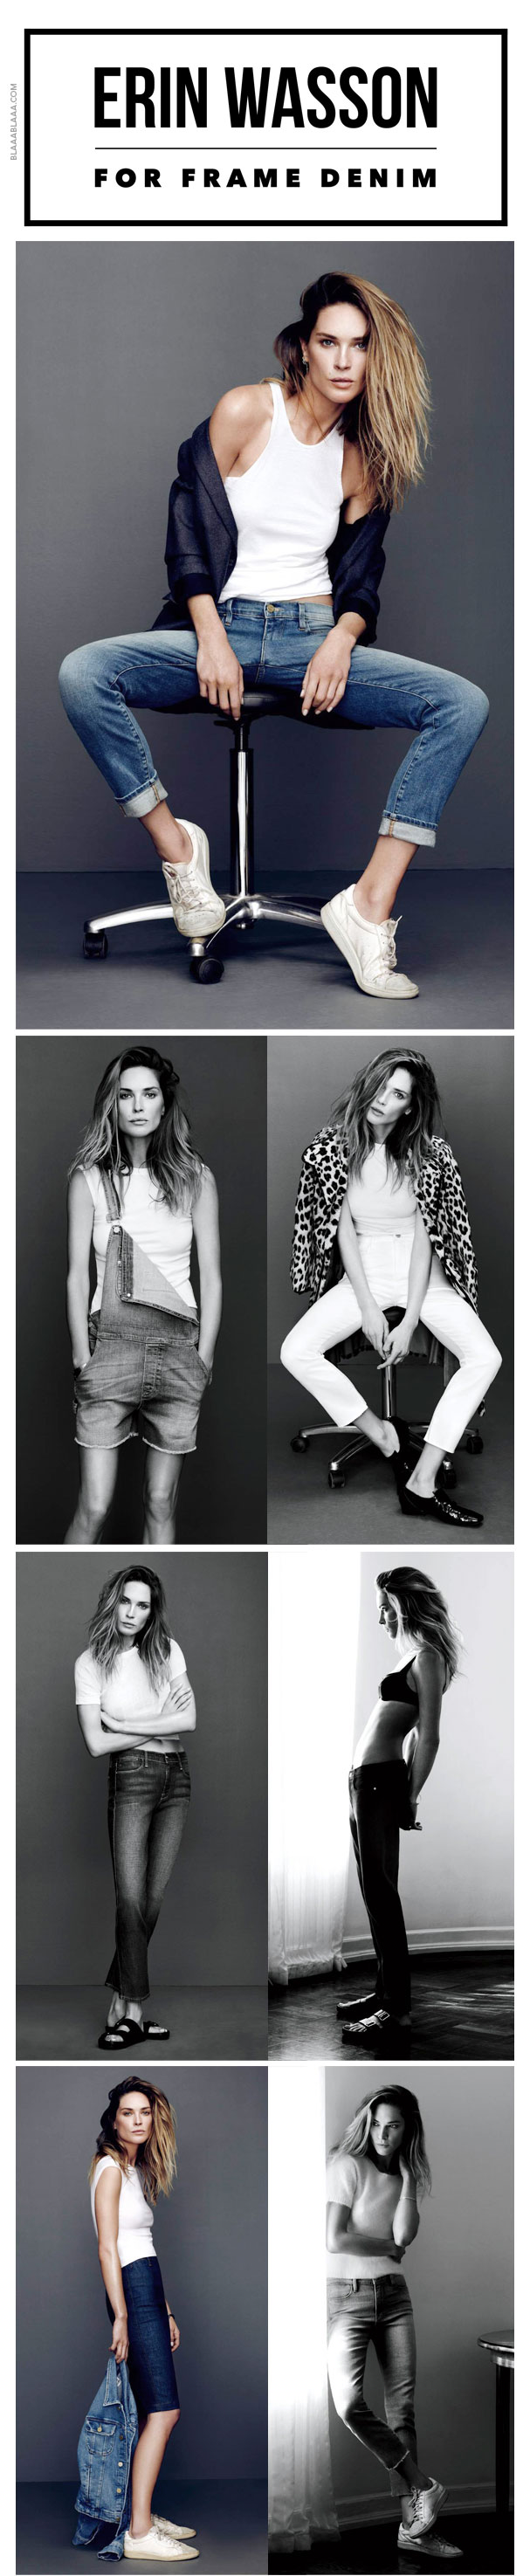 erin-wasson-frame-denim